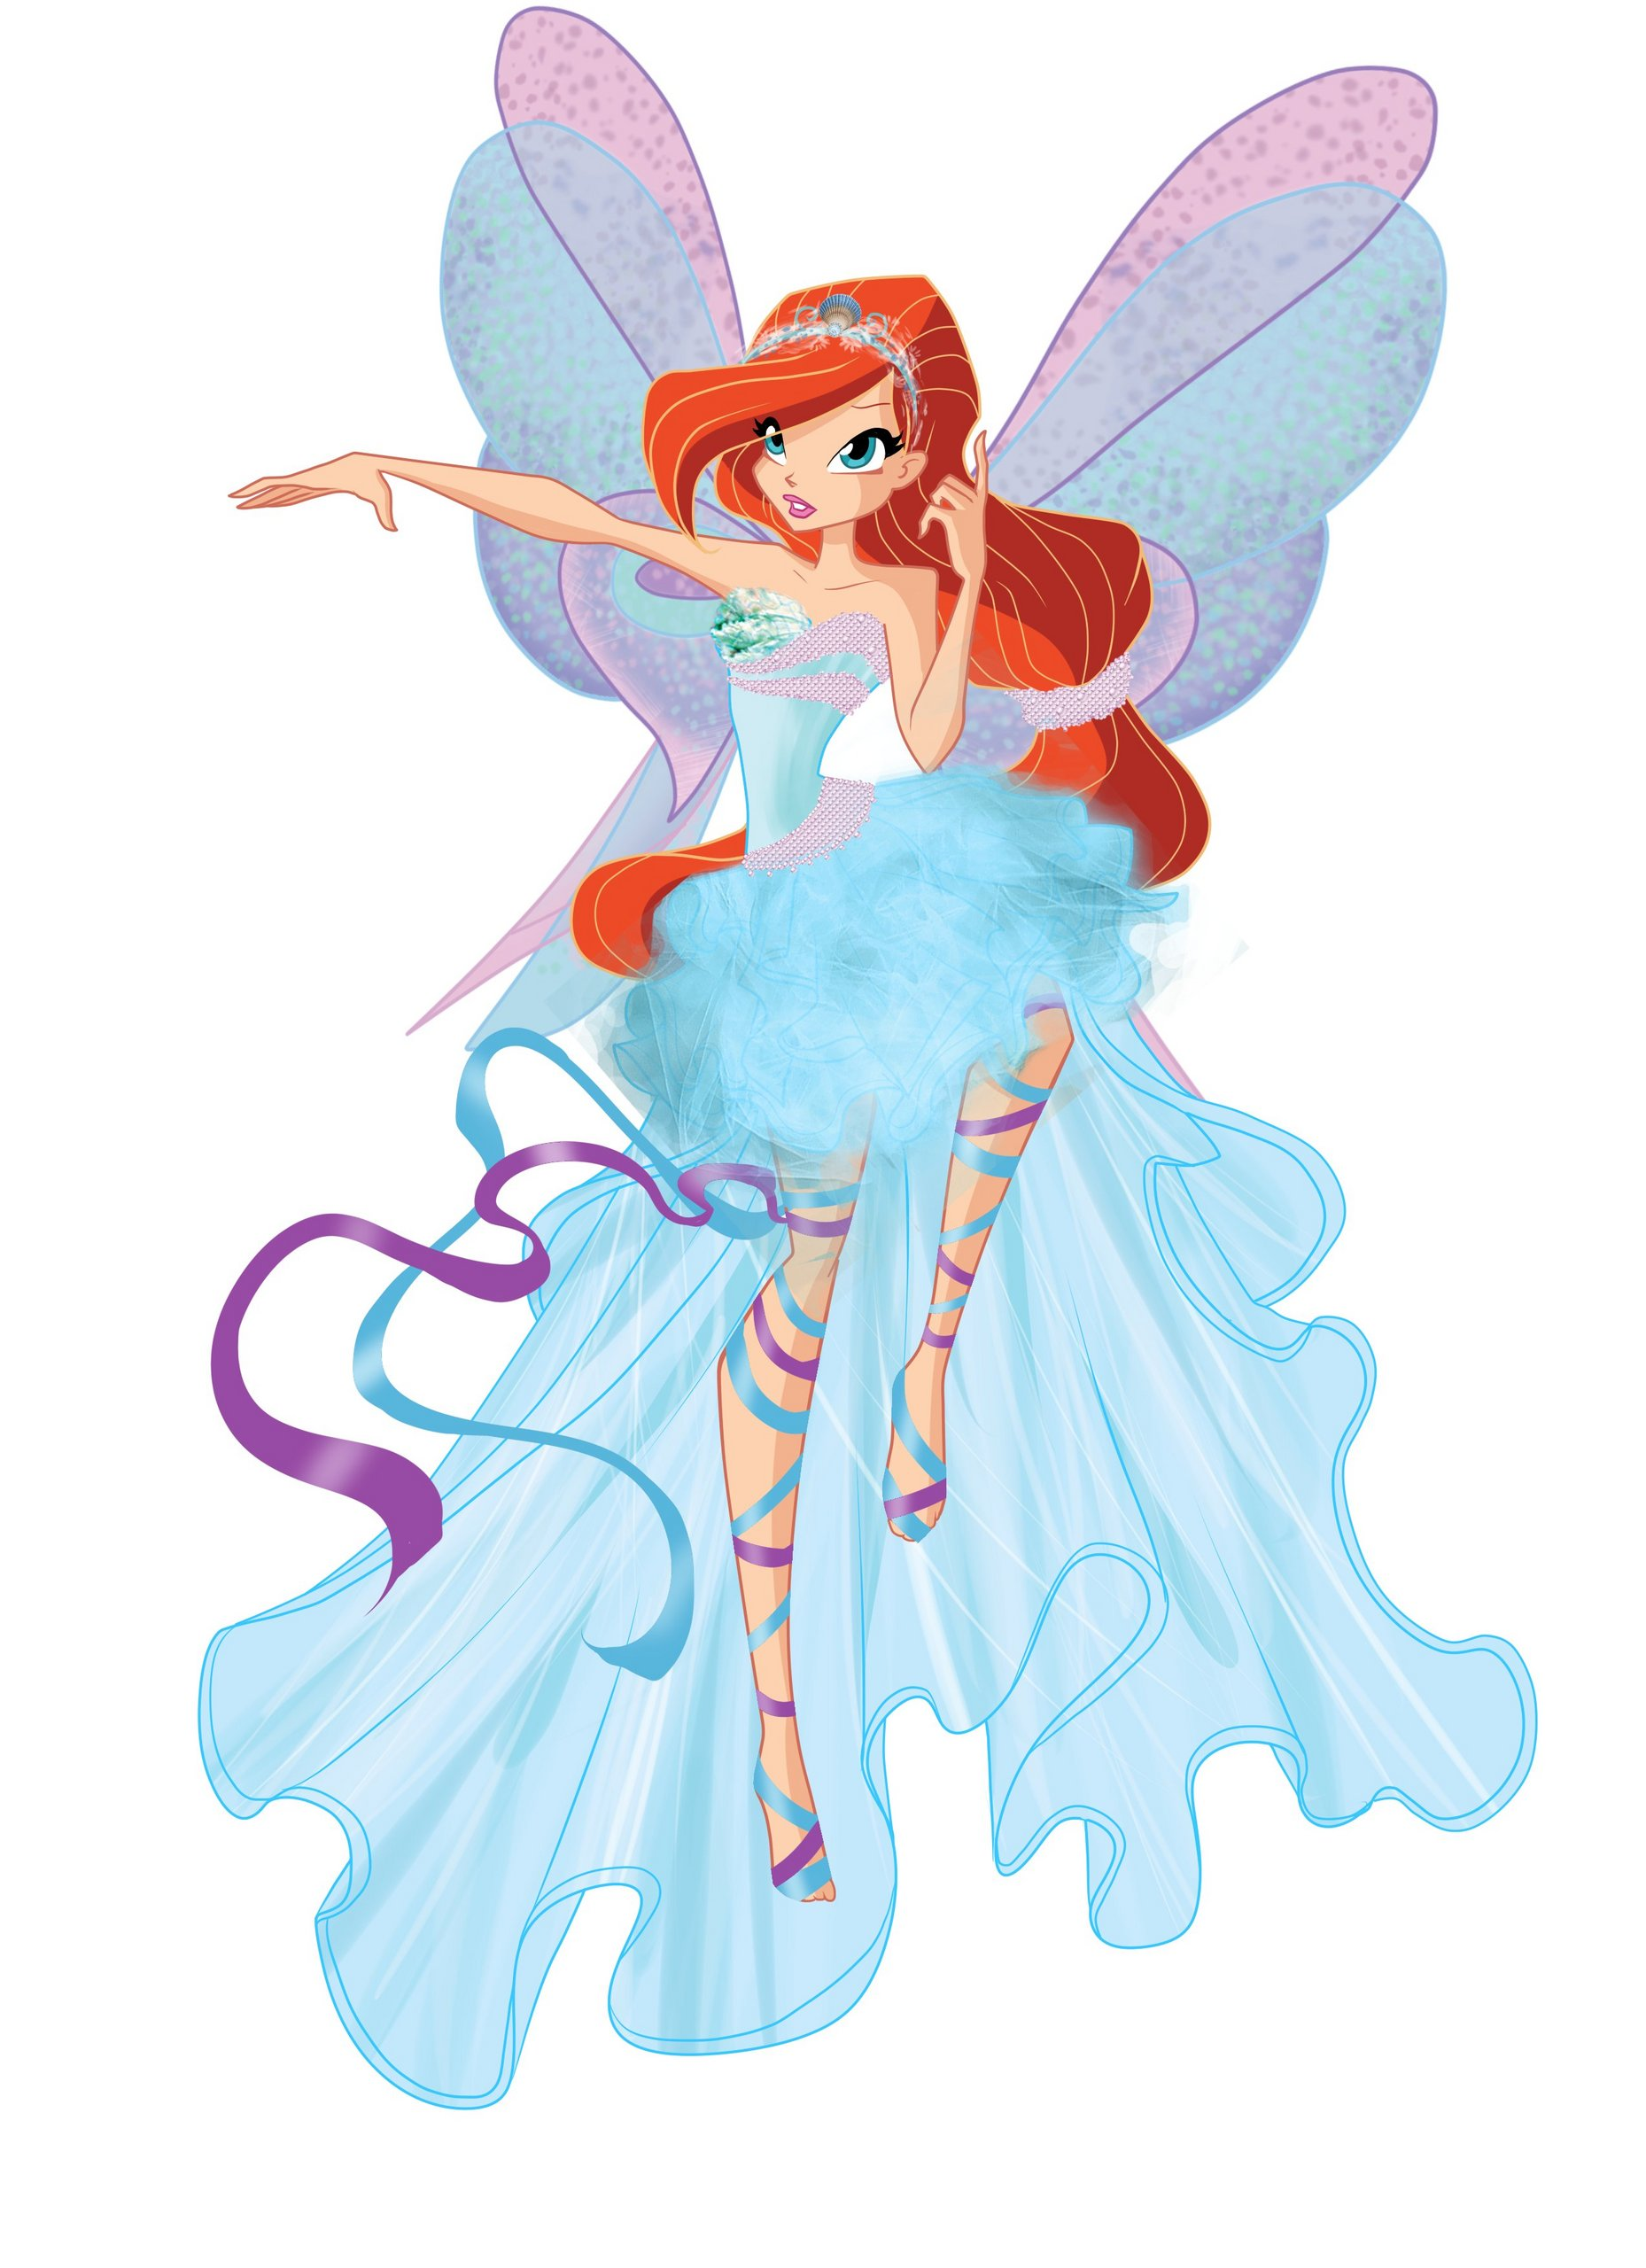 Bloom From Winx Club Images Bloom Hd Wallpaper And Winx Club Bloom